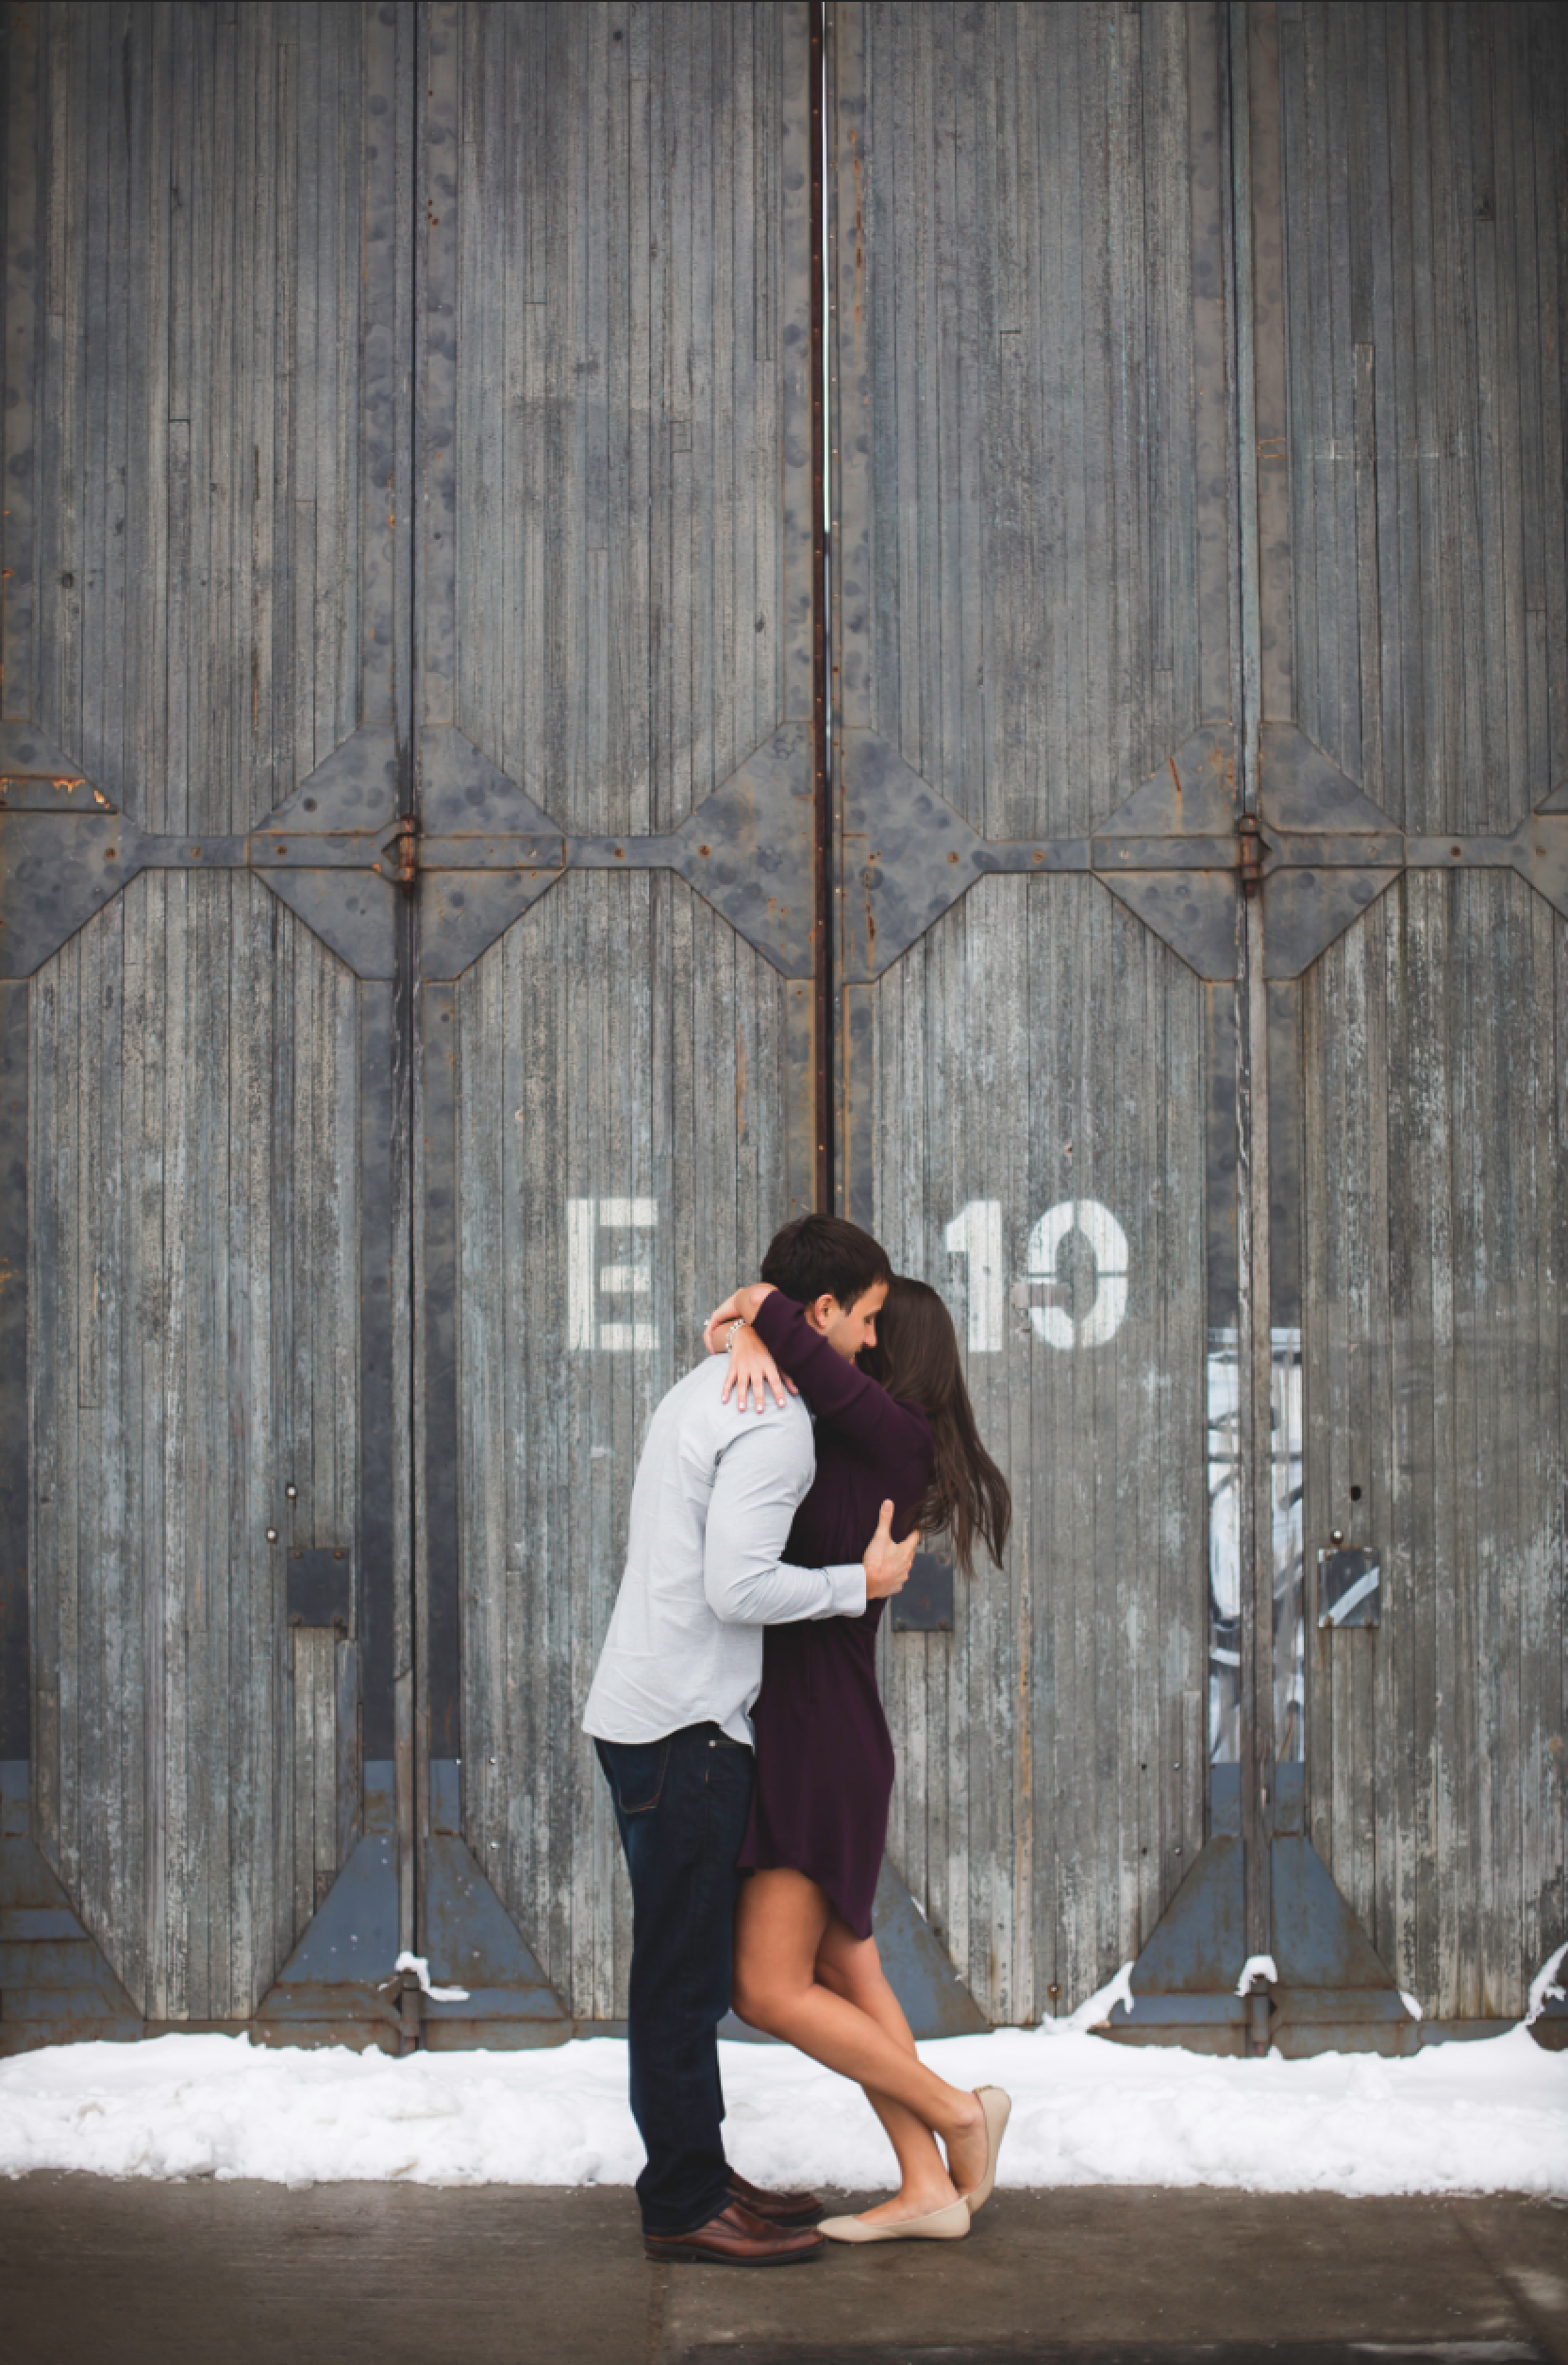 Engagement-Session-Downtown-Toronto-Hamilton-Burlington-Oakville-Niagara-Wedding-Photographer-Engaged-Photography-Artscape-Wynchwood-Barn-Urban-HamOnt-Engaged-Moments-by-Lauren-Photo-Image-16.png